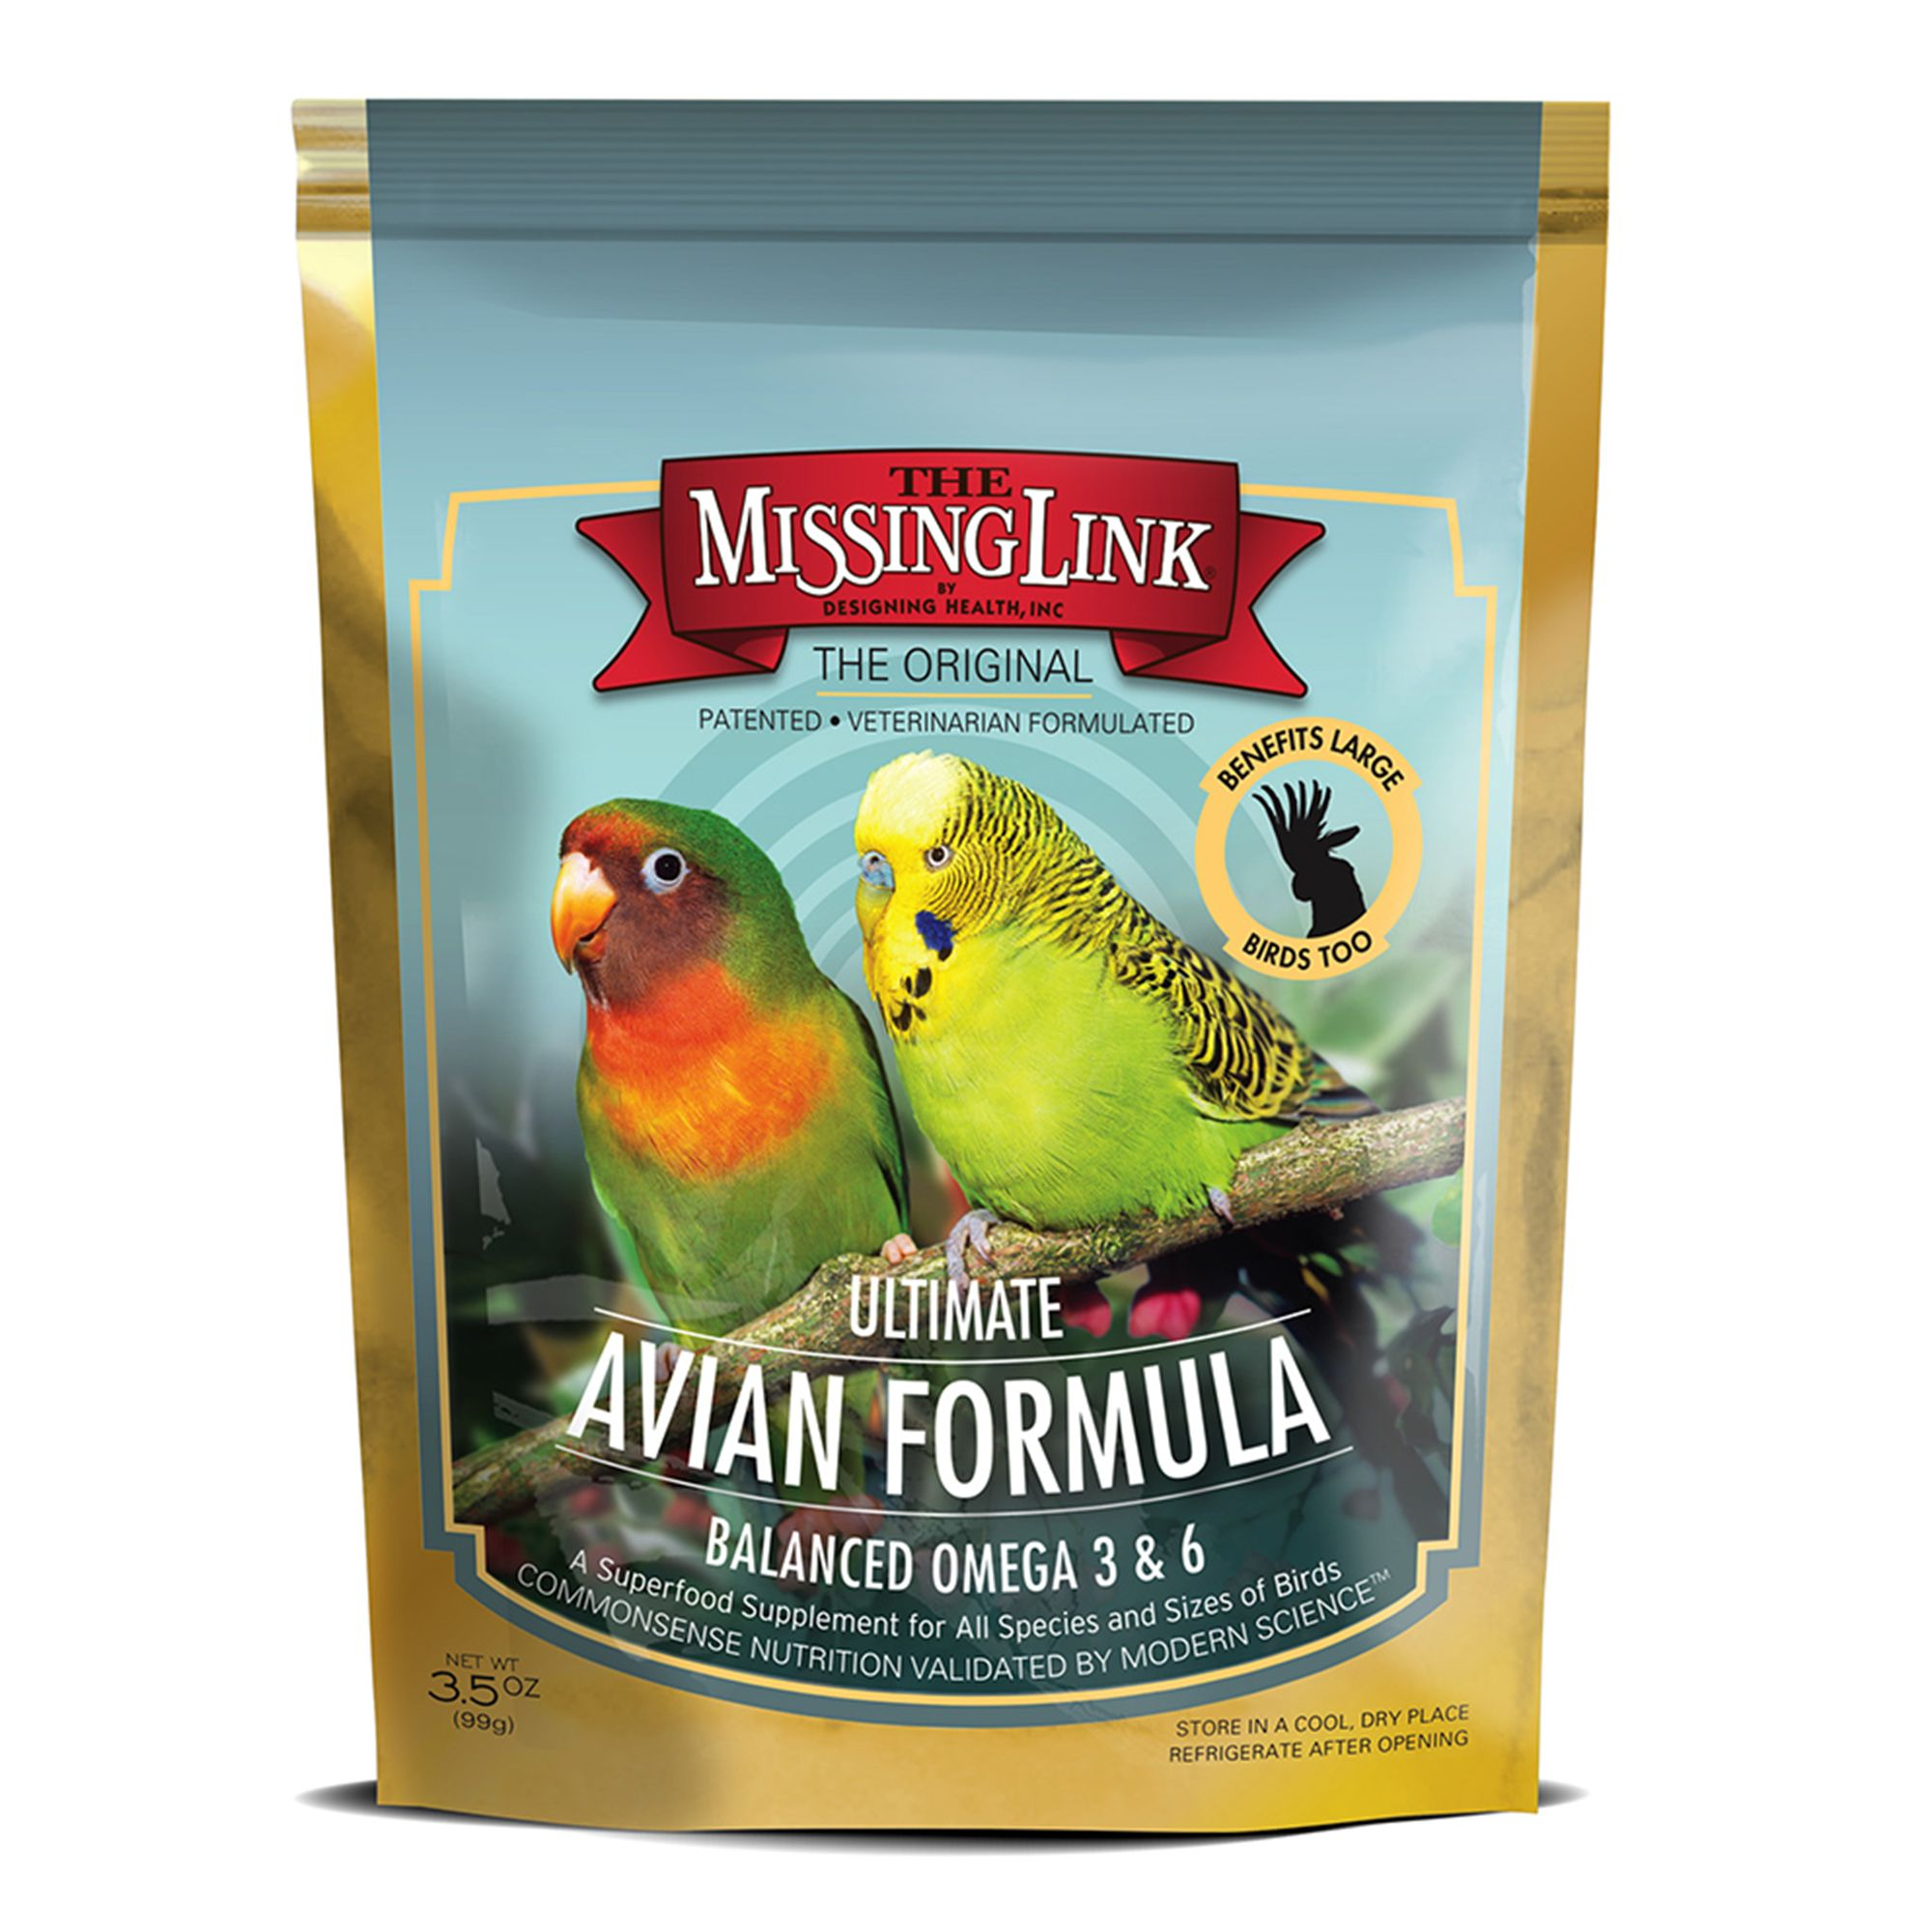 The Missing Link Ultimate Avian Formula Bird Food Supplement Size 3.5 Oz